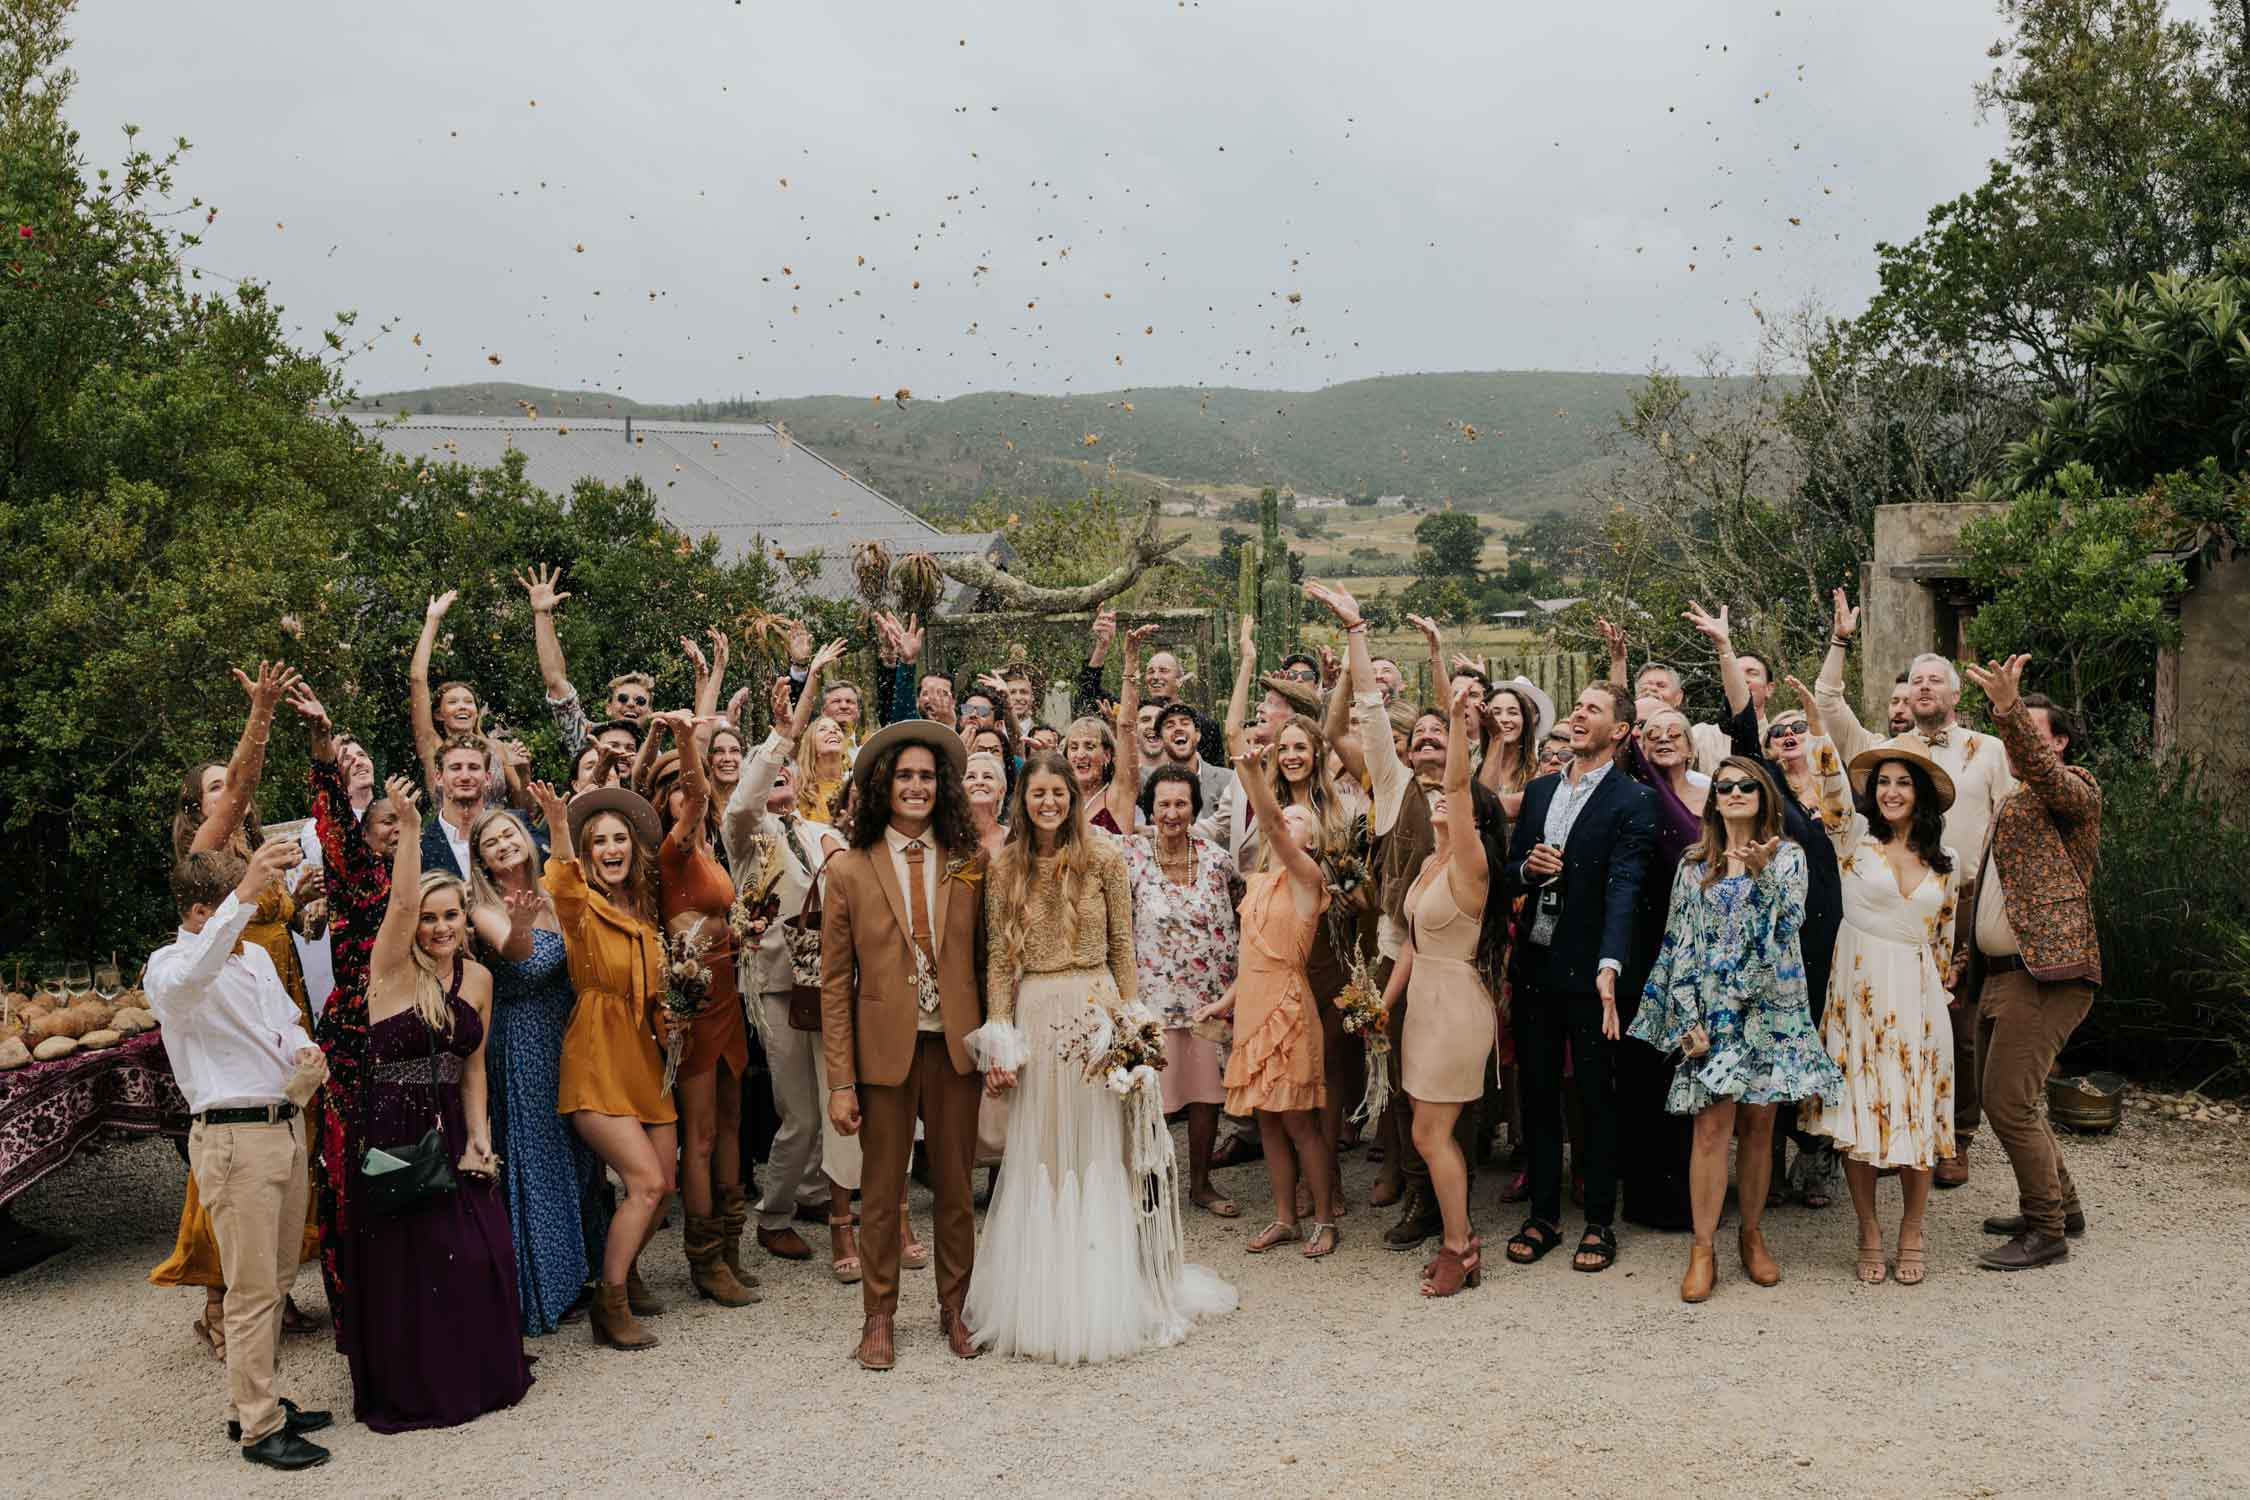 Fun group photo of all the guests at wedding throwing confetti